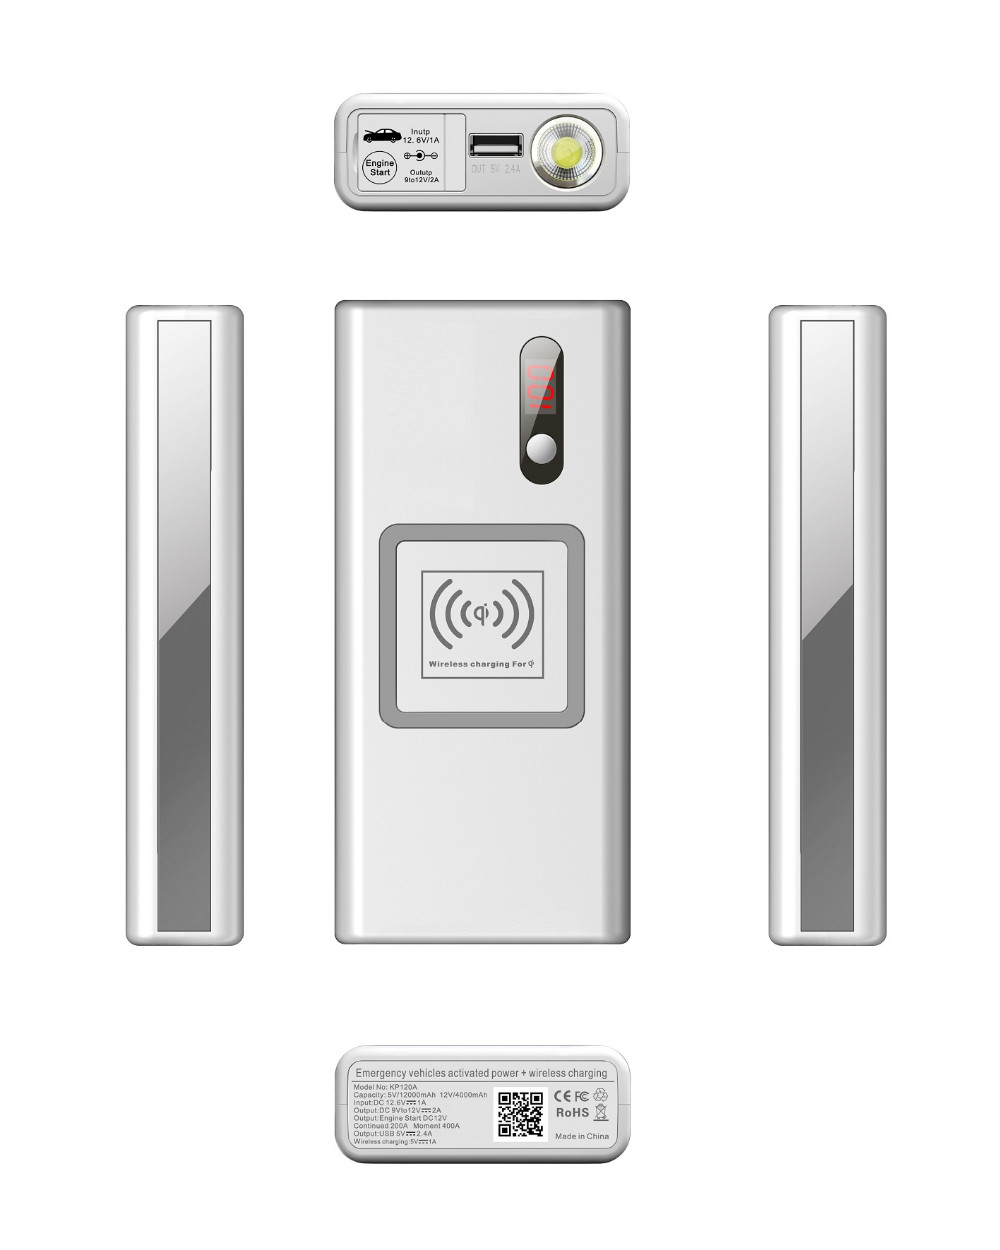 wireless power bank with emergency vehicls activated power-2